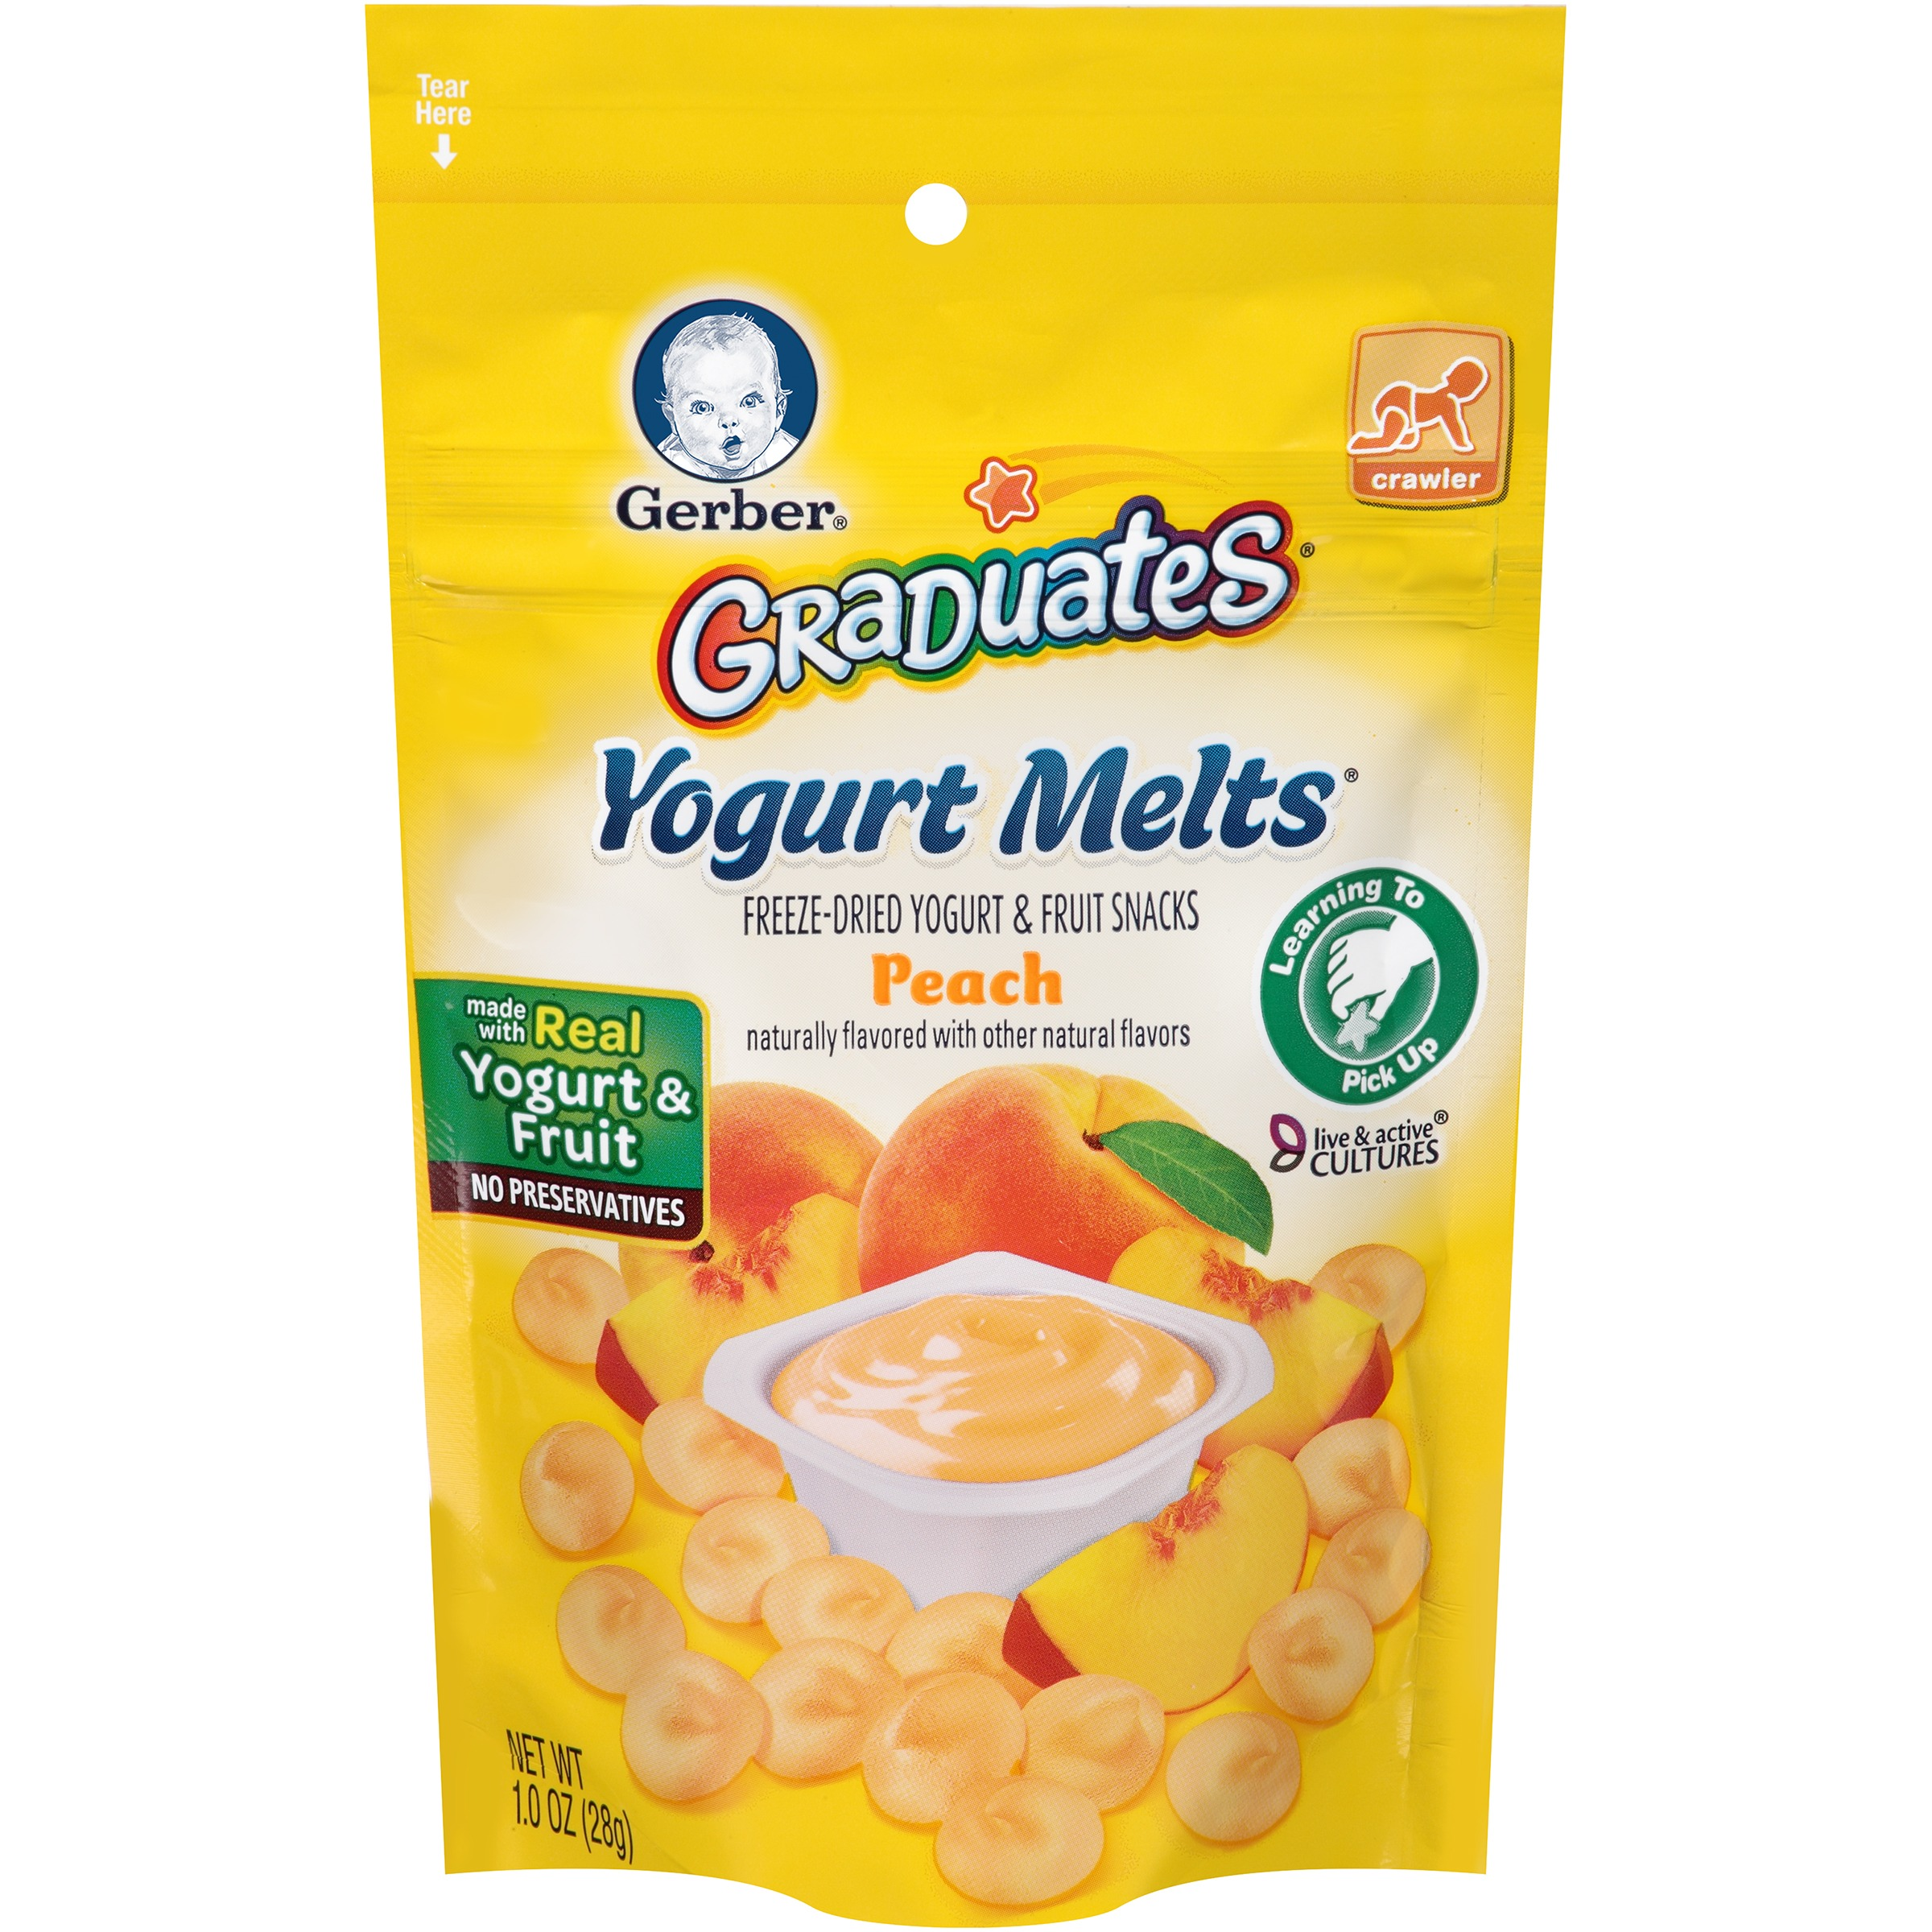 Gerber Graduates Yogurt Melts Freeze-Dried Yogurt & Fruit Snacks, Peach, 1 oz